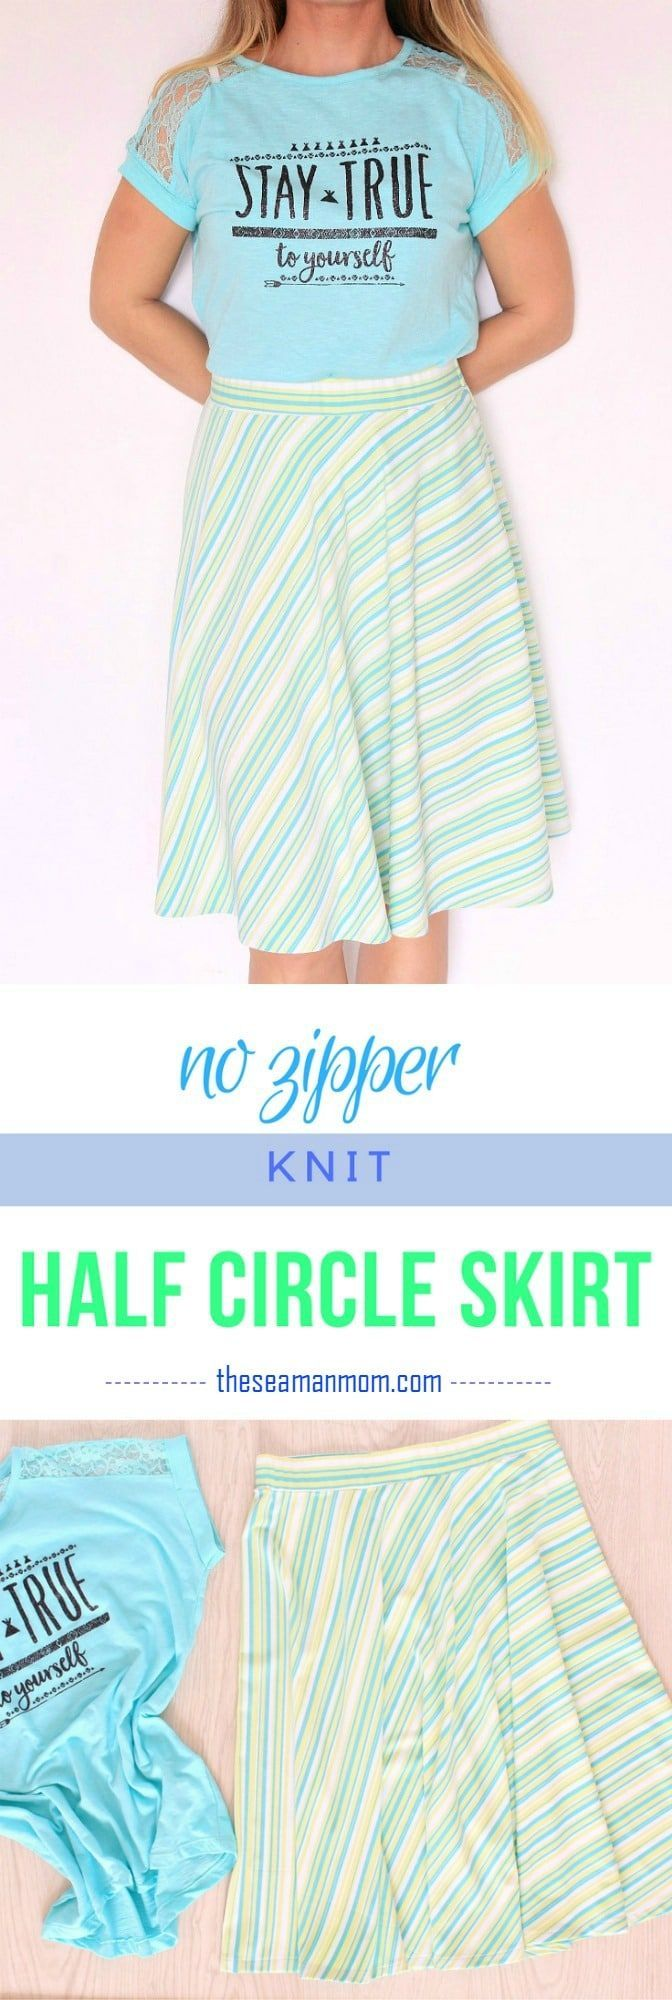 Easy half circle skirt no zipper circle skirt tutorial easy knit half circle skirt sewing tutorial put together an amazing skirt that will fit bankloansurffo Image collections